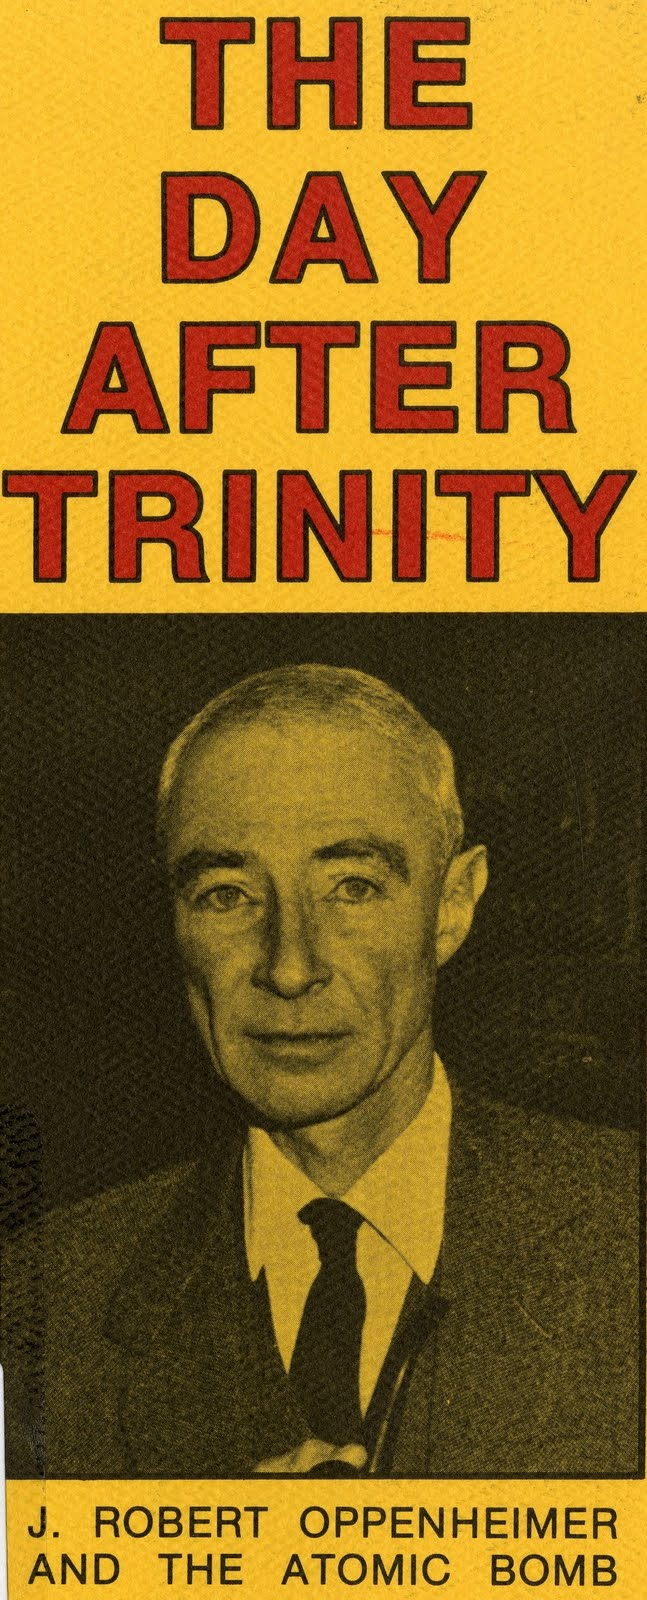 day after trinity The day after trinity (akathe day after trinity: j robert oppenheimer and the atomic bomb) is a 1980 documentary film directed and produced by jon h else in association with kteh public.